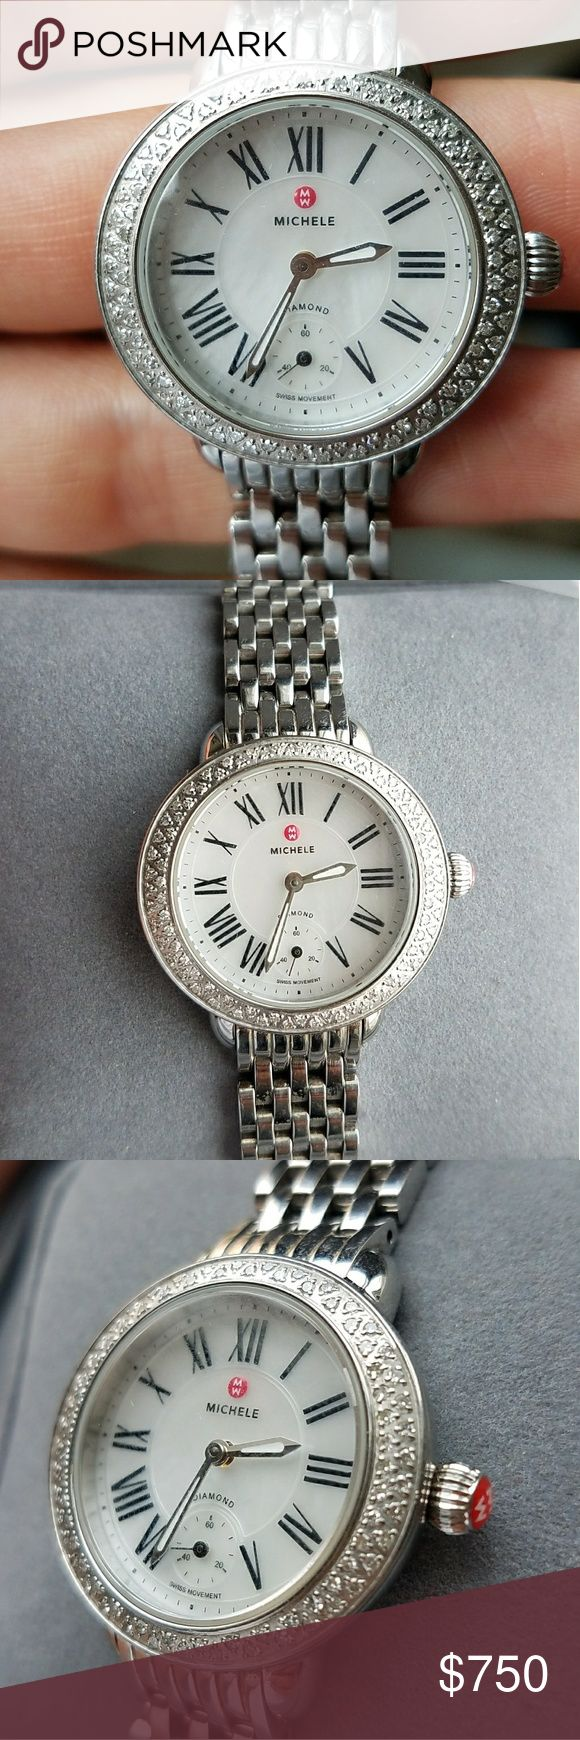 Michele Diamond bezel Serein 12 Ladies watch 100% authentic  Comes with box, extra links and screws and polishing cloth.  Eighty-four glistening diamonds frame a slender round case perfectly sized as a small cocktail watch. Roman-numeral markers and a dainty sub seconds dial further refine the luminous mother-of-pearl dial. Get a new look at any time with Micheles selection of interchangeable 12mm straps. 28mm case. Total diamond weight: 0.36ct. Color: H-I. Clarity: SI.  Payp, vinted $600…